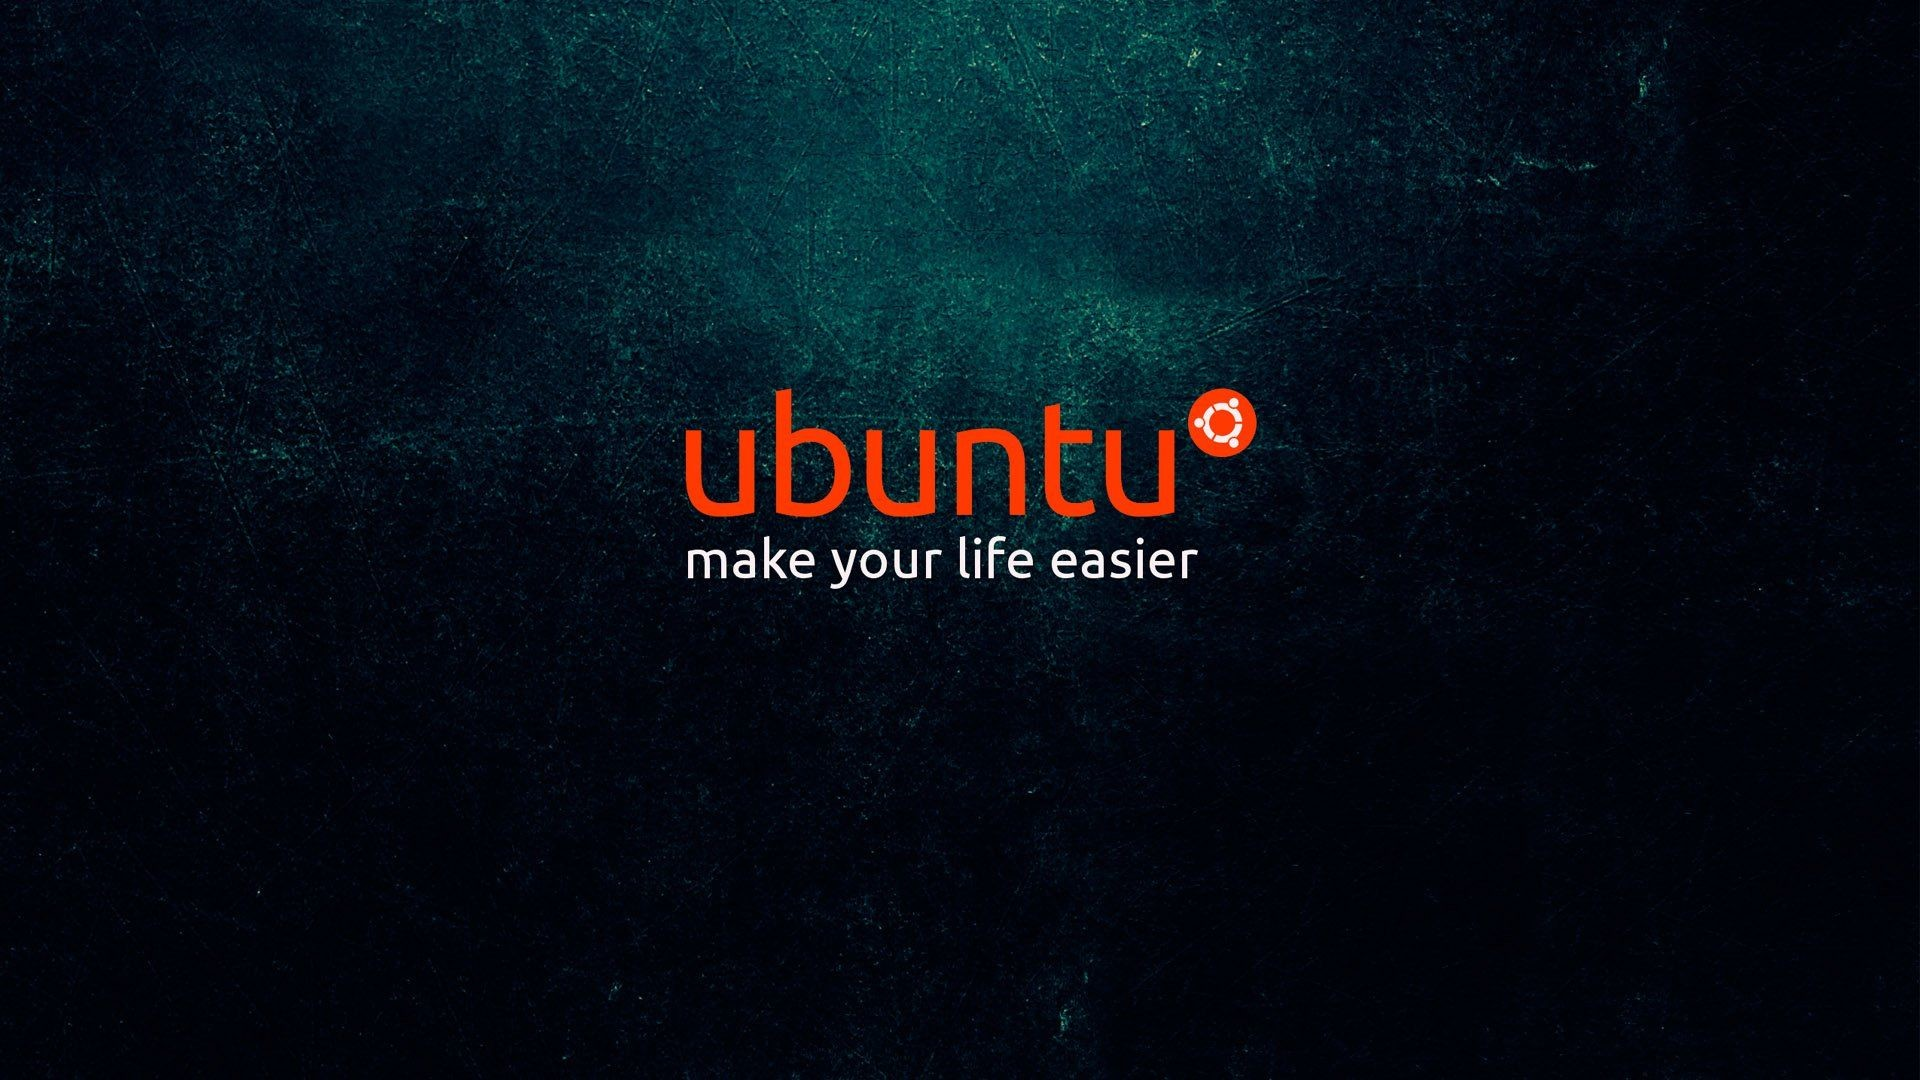 Linux Stylishly And Simple – HD Wallpapers Widescreen – 1920×1080